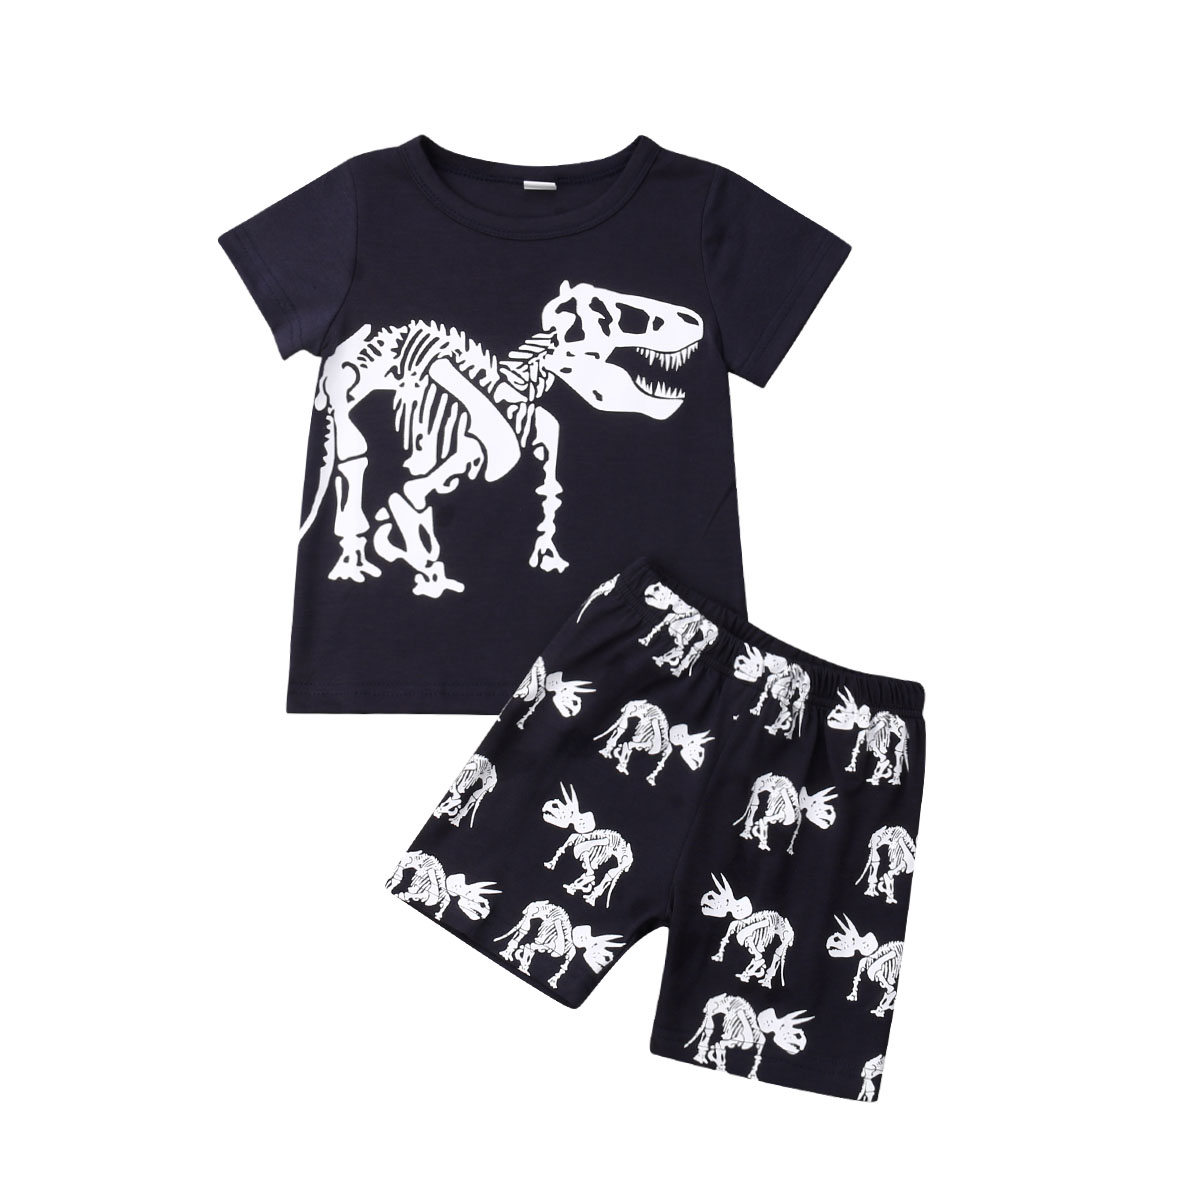 Boys' Clothing Mother & Kids Glorious 2019 Summer Boys Kids Black Outfits Animal Dinosaur T-shirt Pants Shorts Set Clothes 2-8y Cool Fashion Cotton Kid Clothing Sets